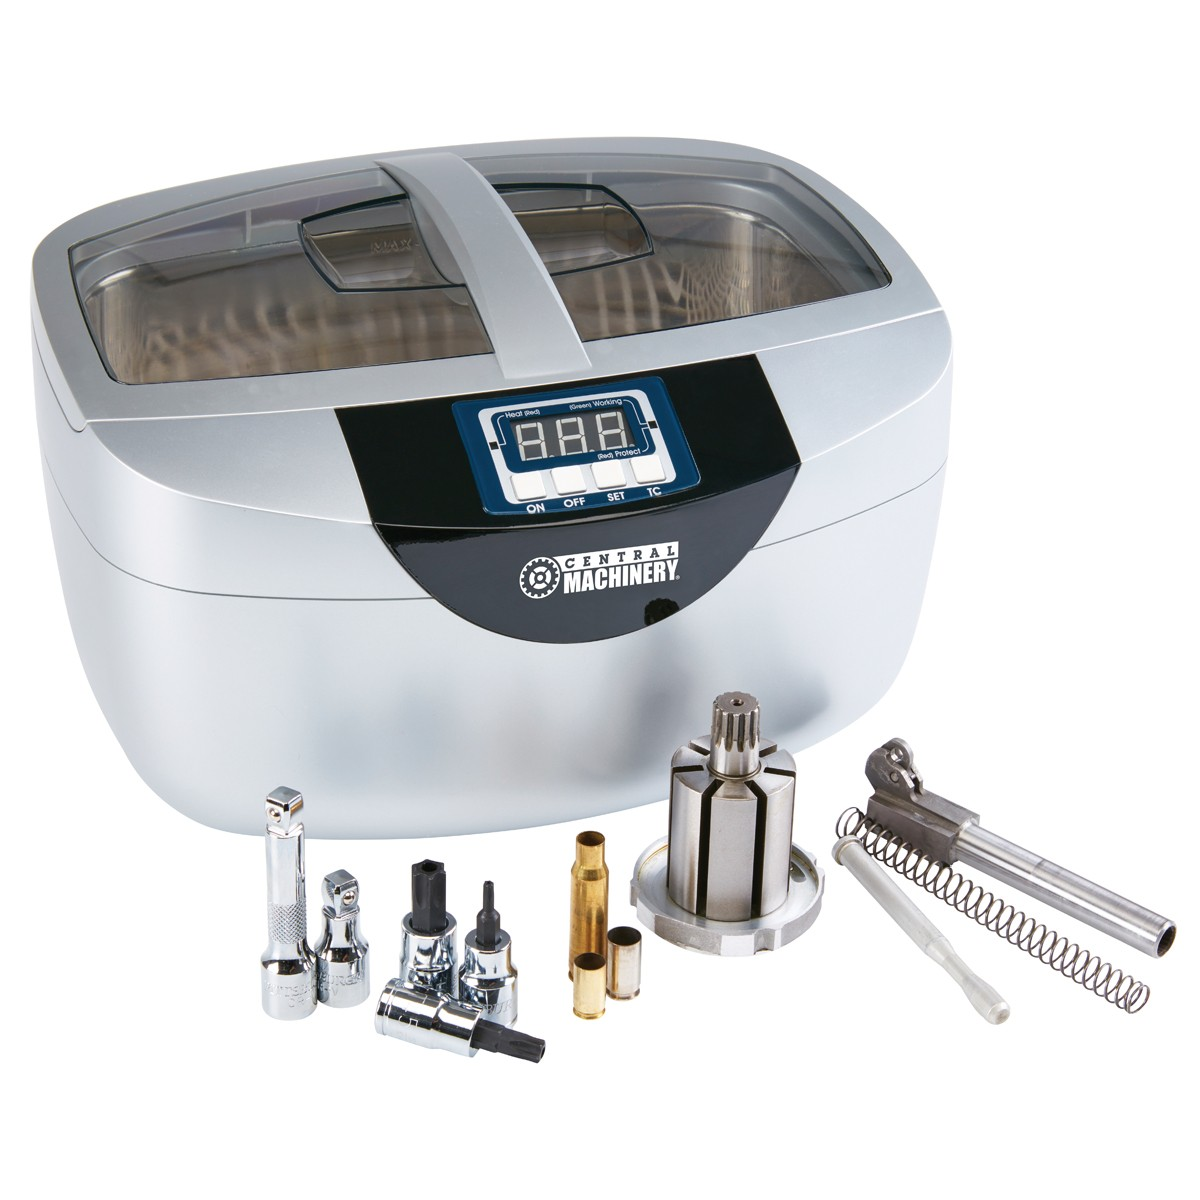 Chicago Digital Ultrasonic Cleaner